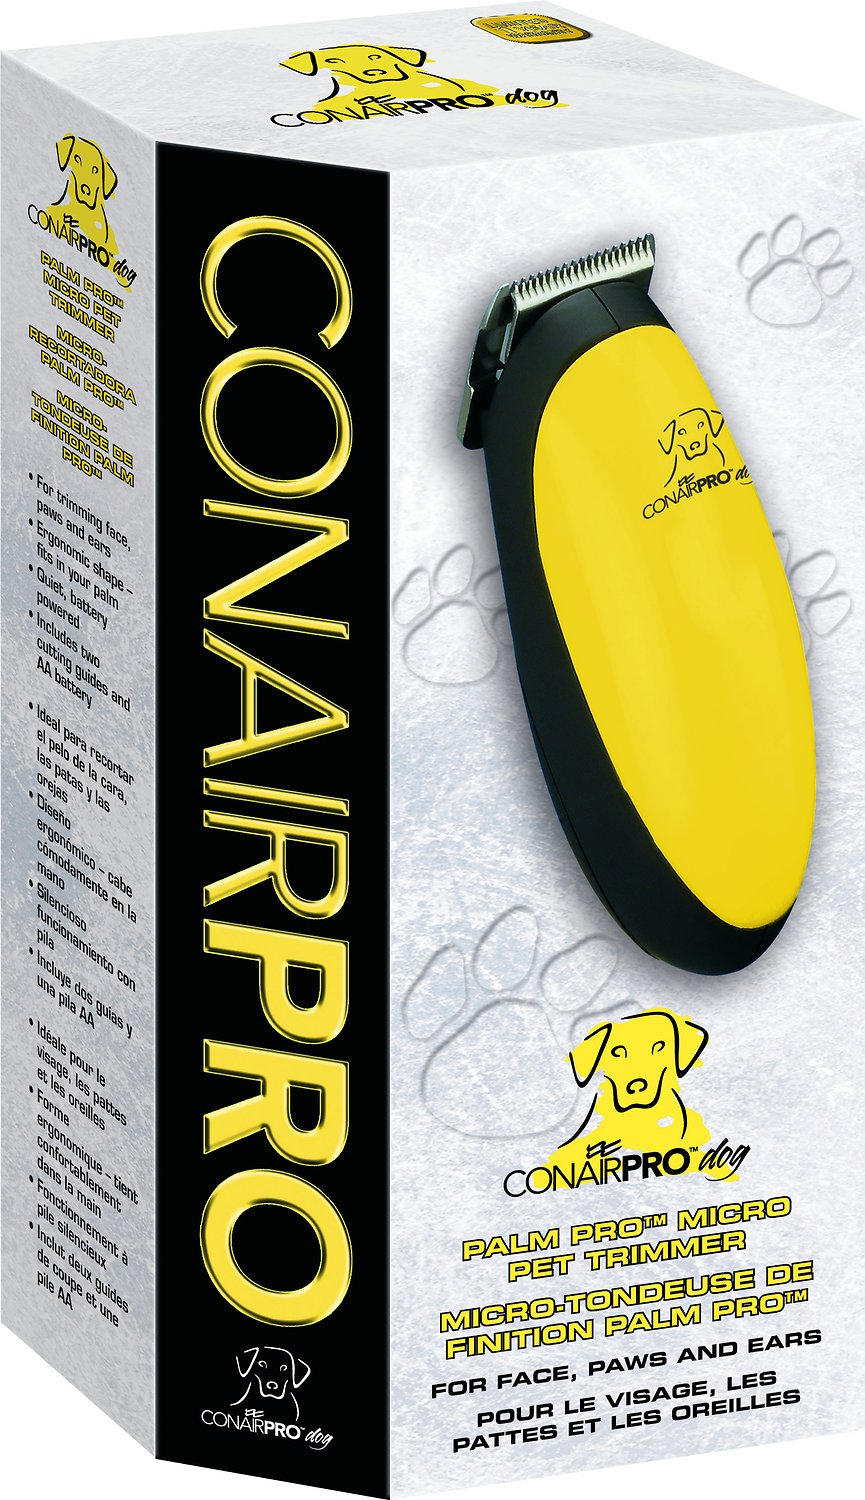 ConairPRO Dog Palm Pro Micro-Trimmer